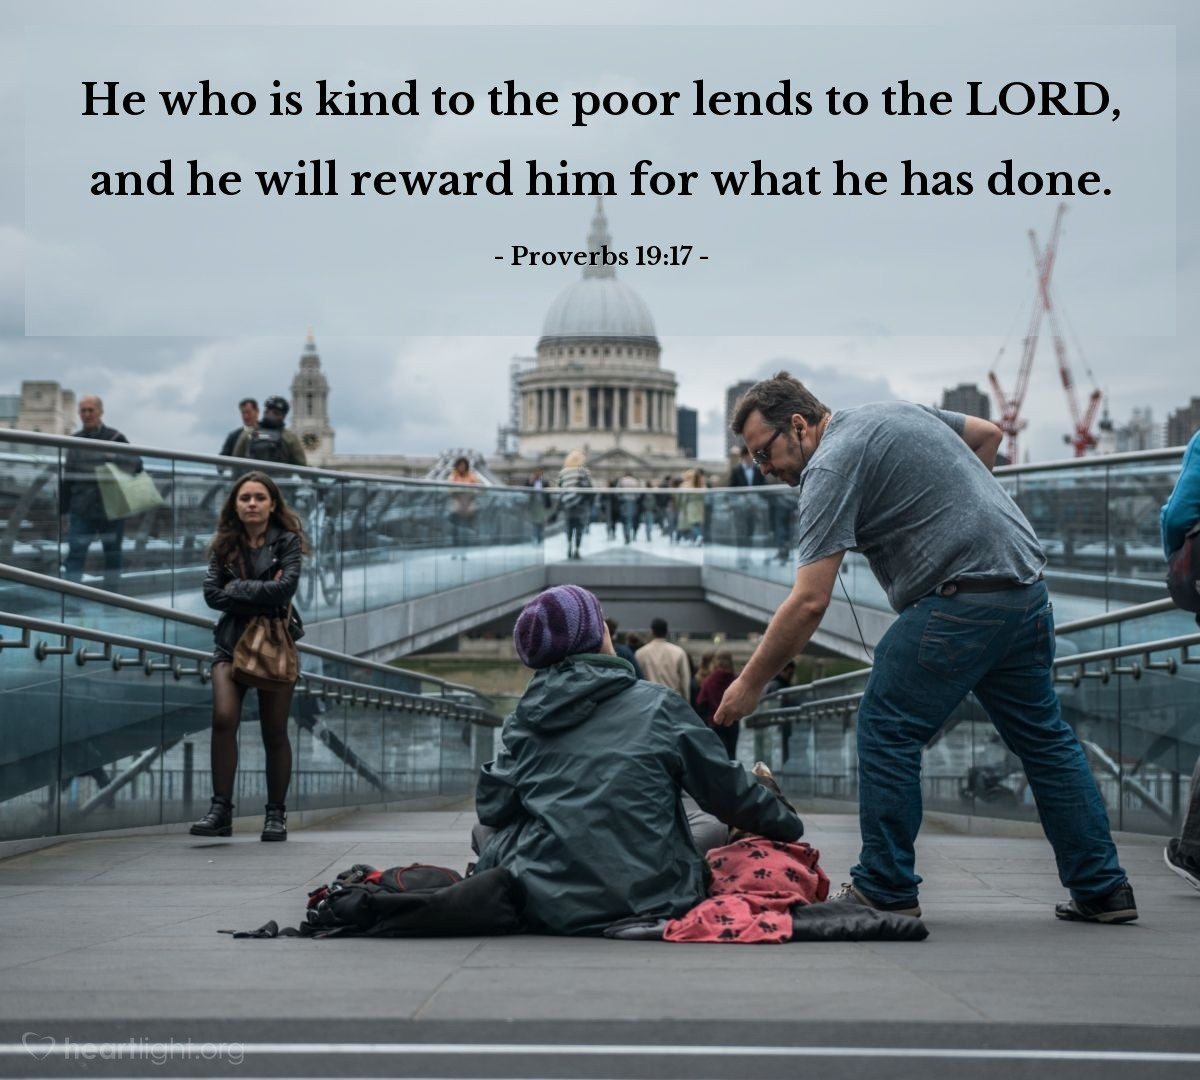 Illustration of Proverbs 19:17 — He who is kind to the poor lends to the LORD, and he will reward him for what he has done.